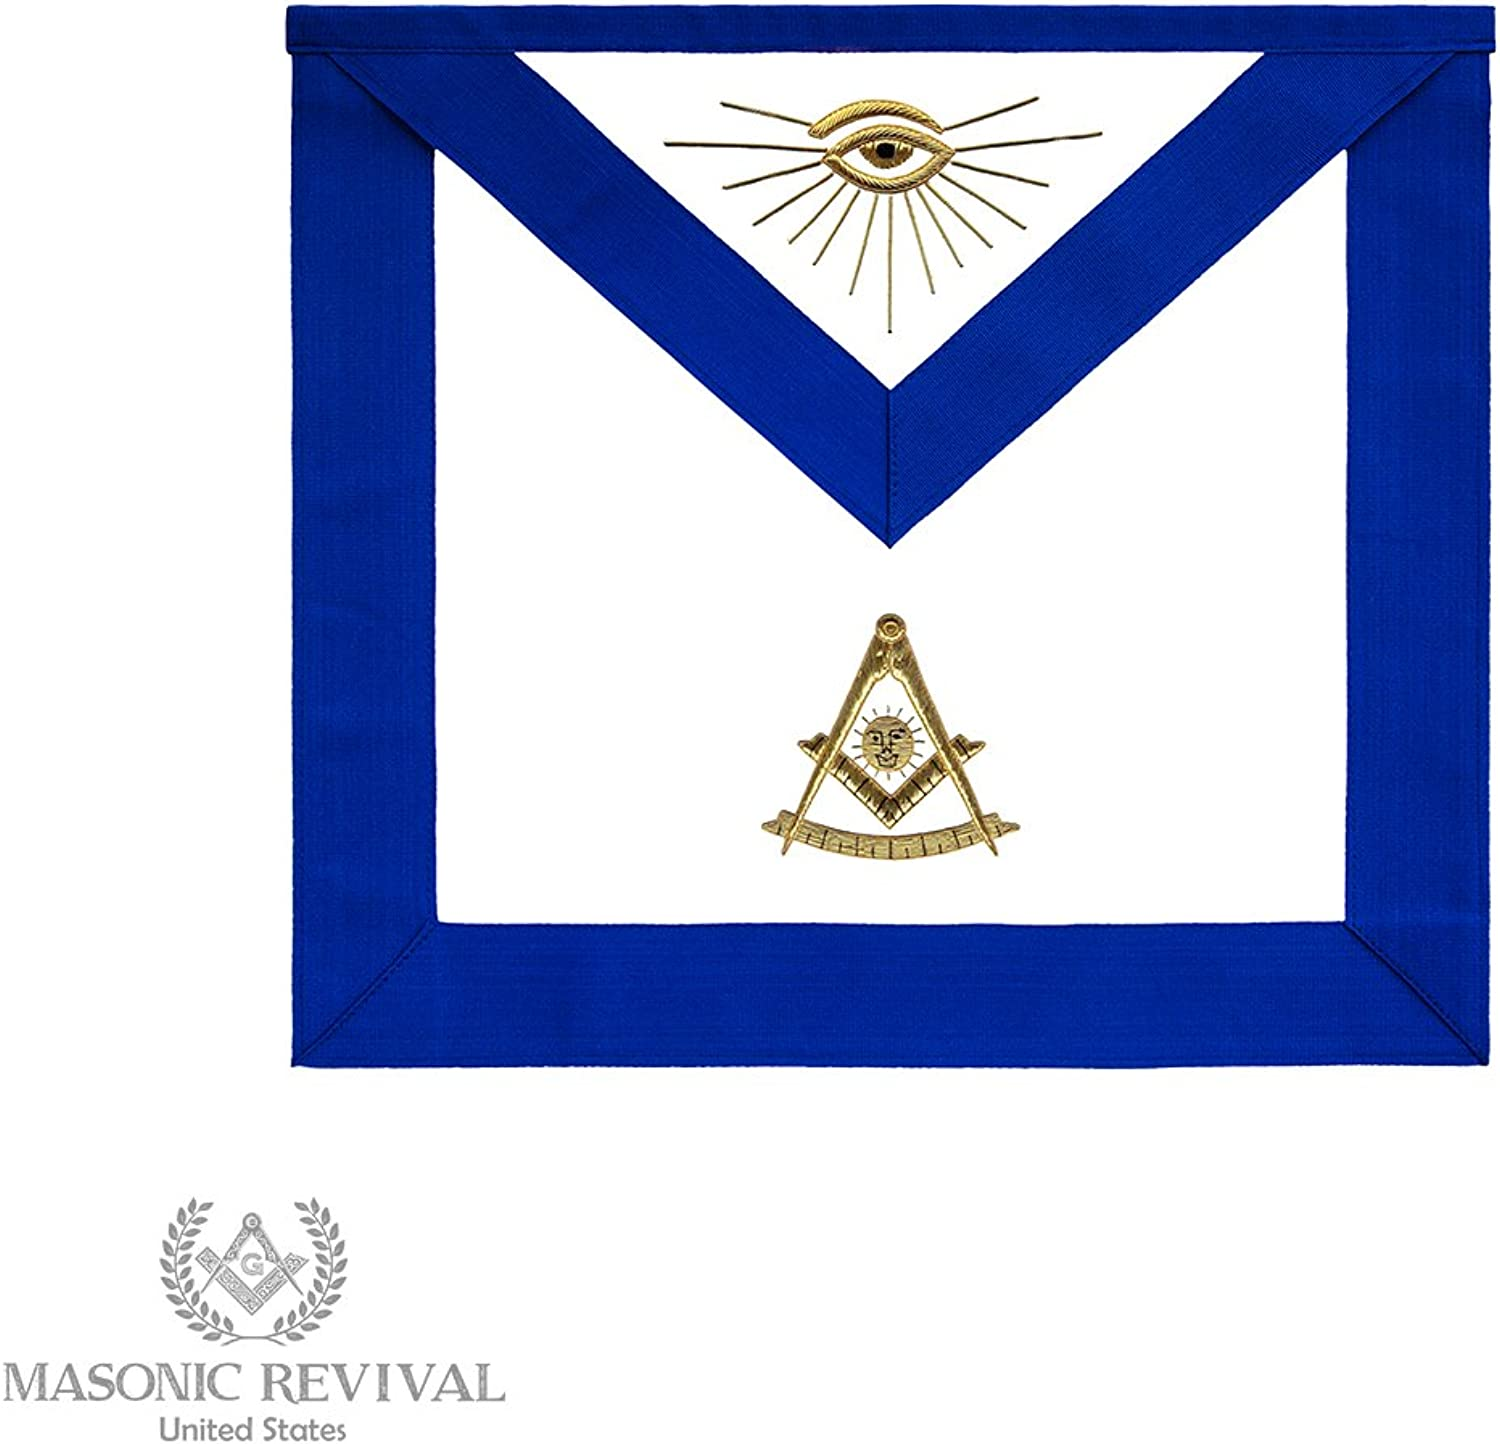 Masonic Revival gold Bullion Past Master Apron (Synthetic Leather)